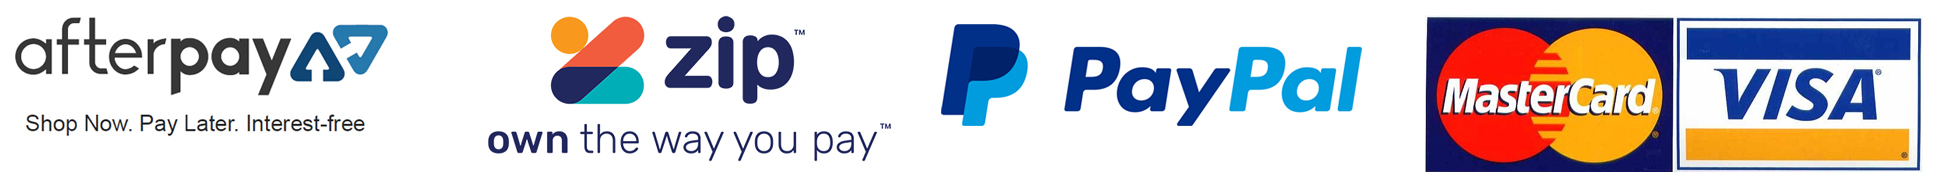 payments-logo.jpg